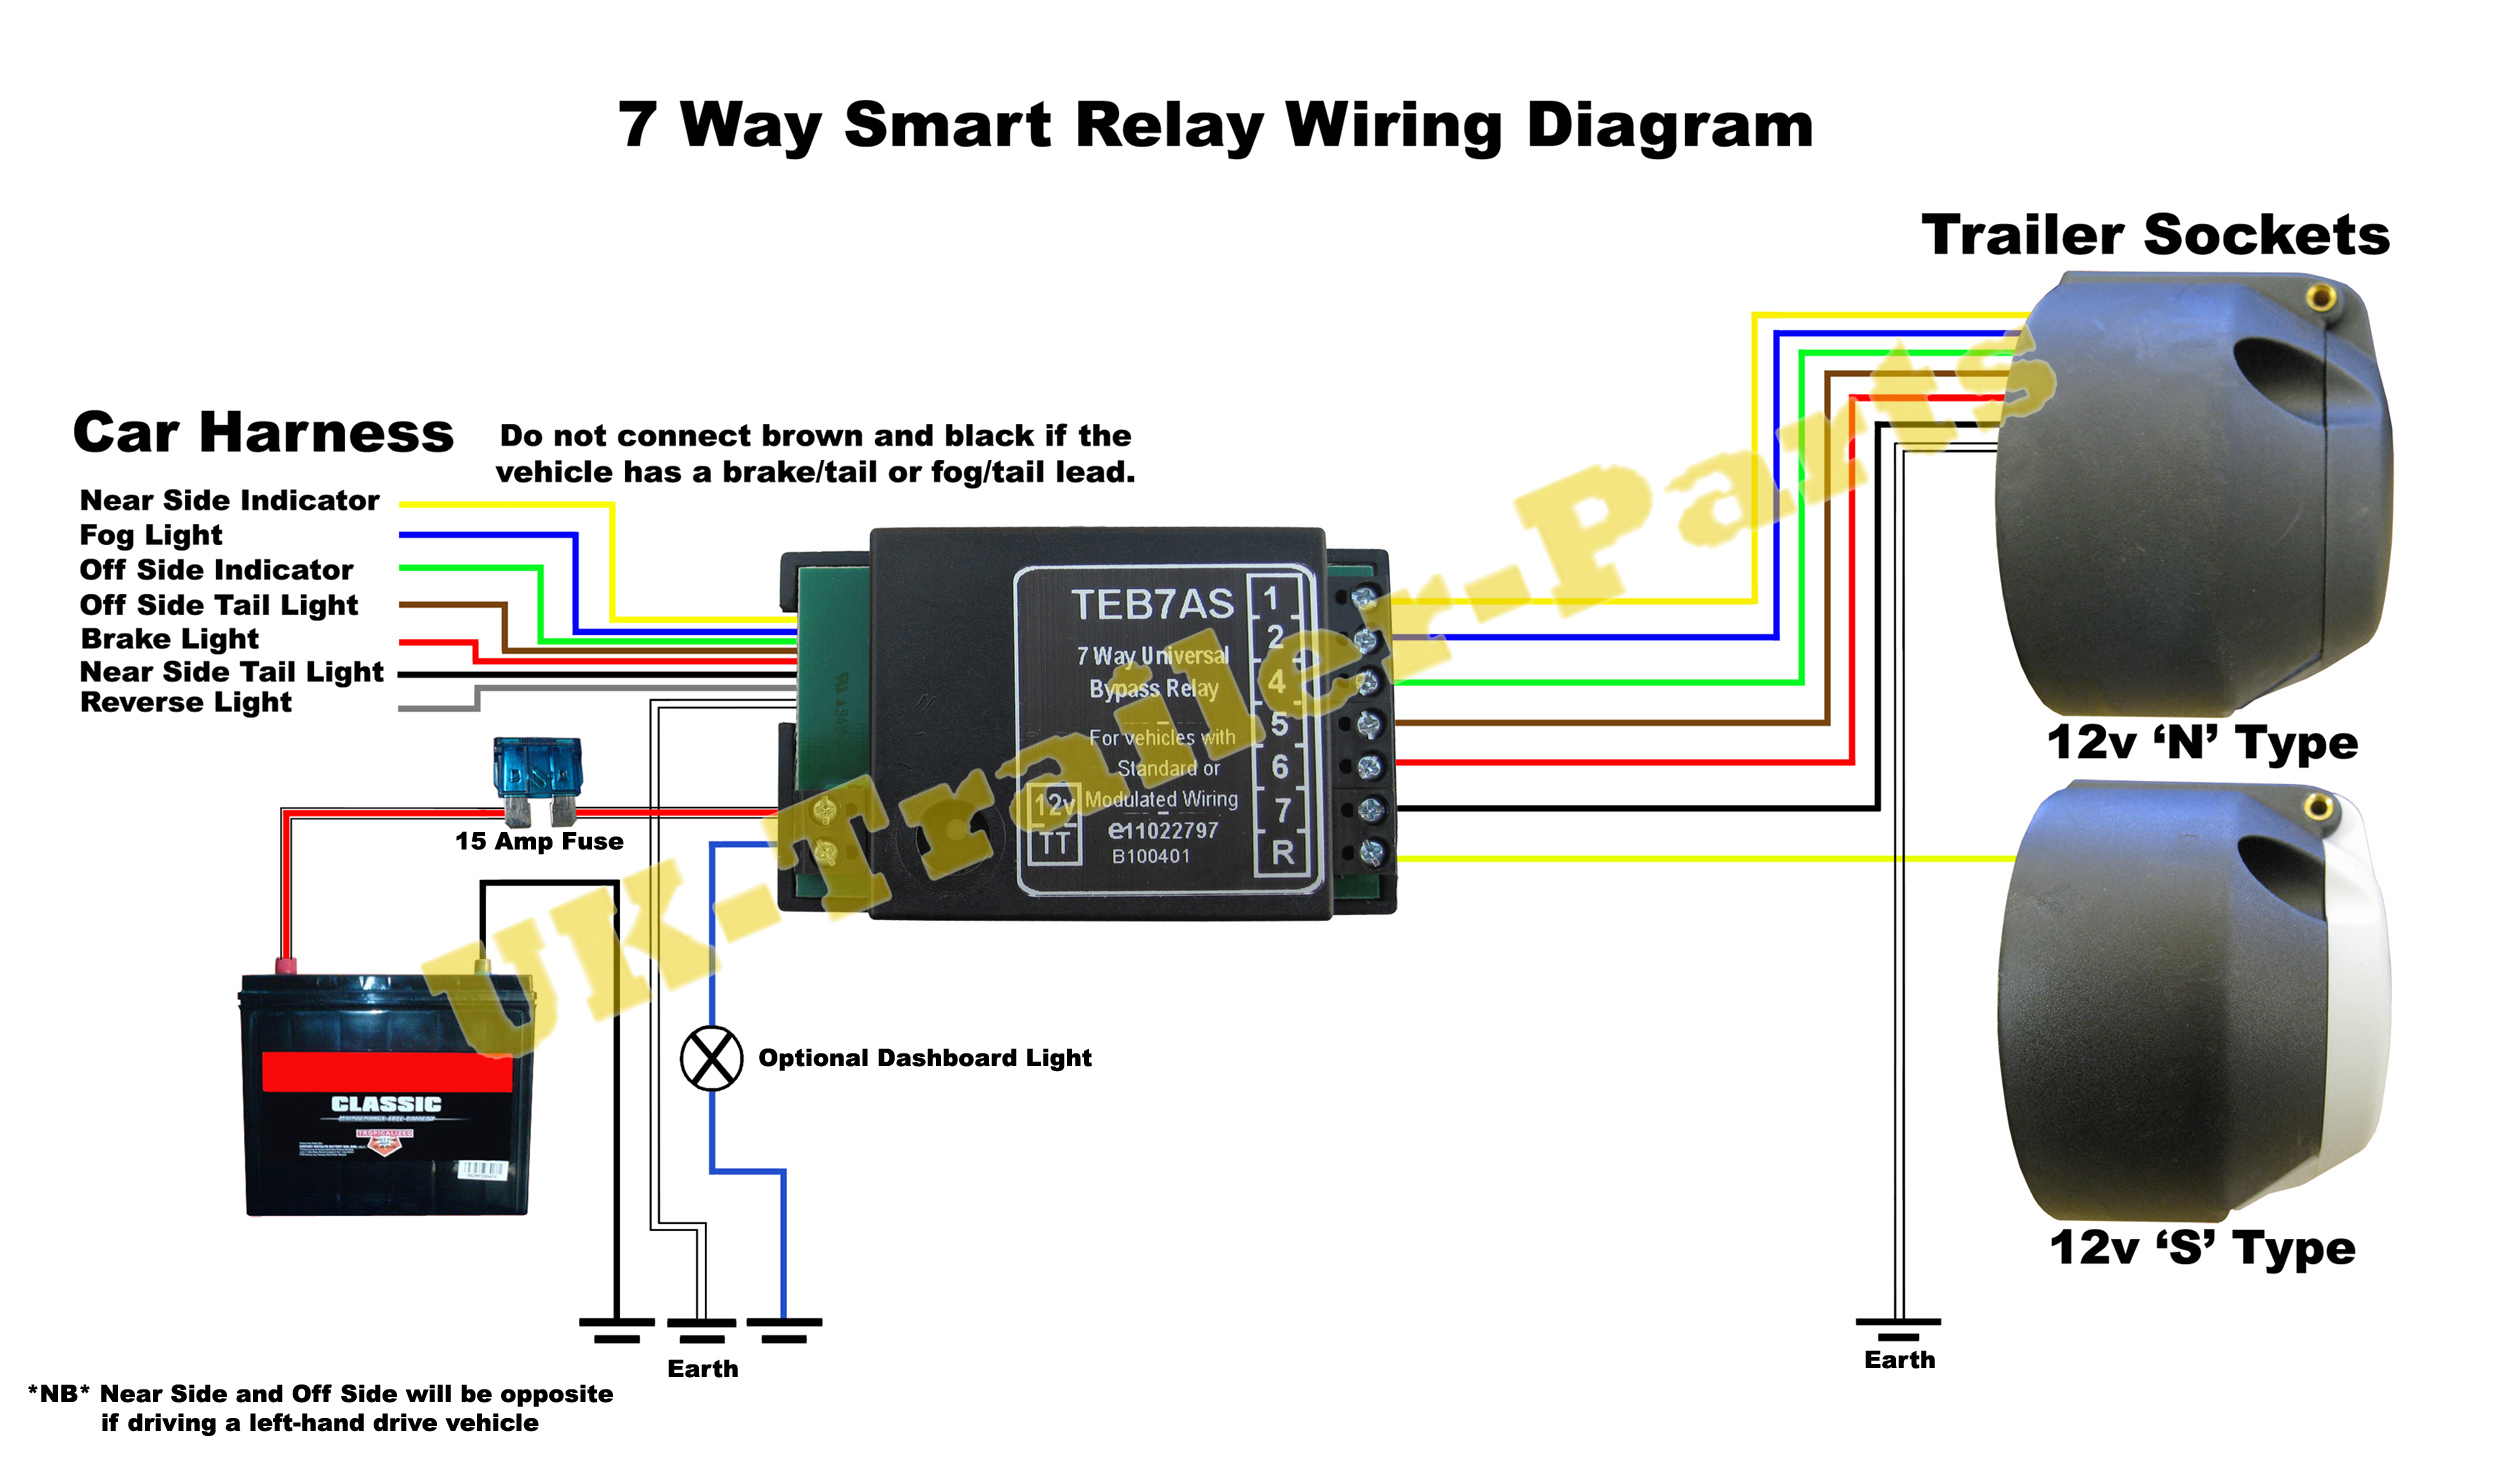 7 way universal bypass relay wiring diagram uk trailer parts cheapraybanclubmaster Choice Image